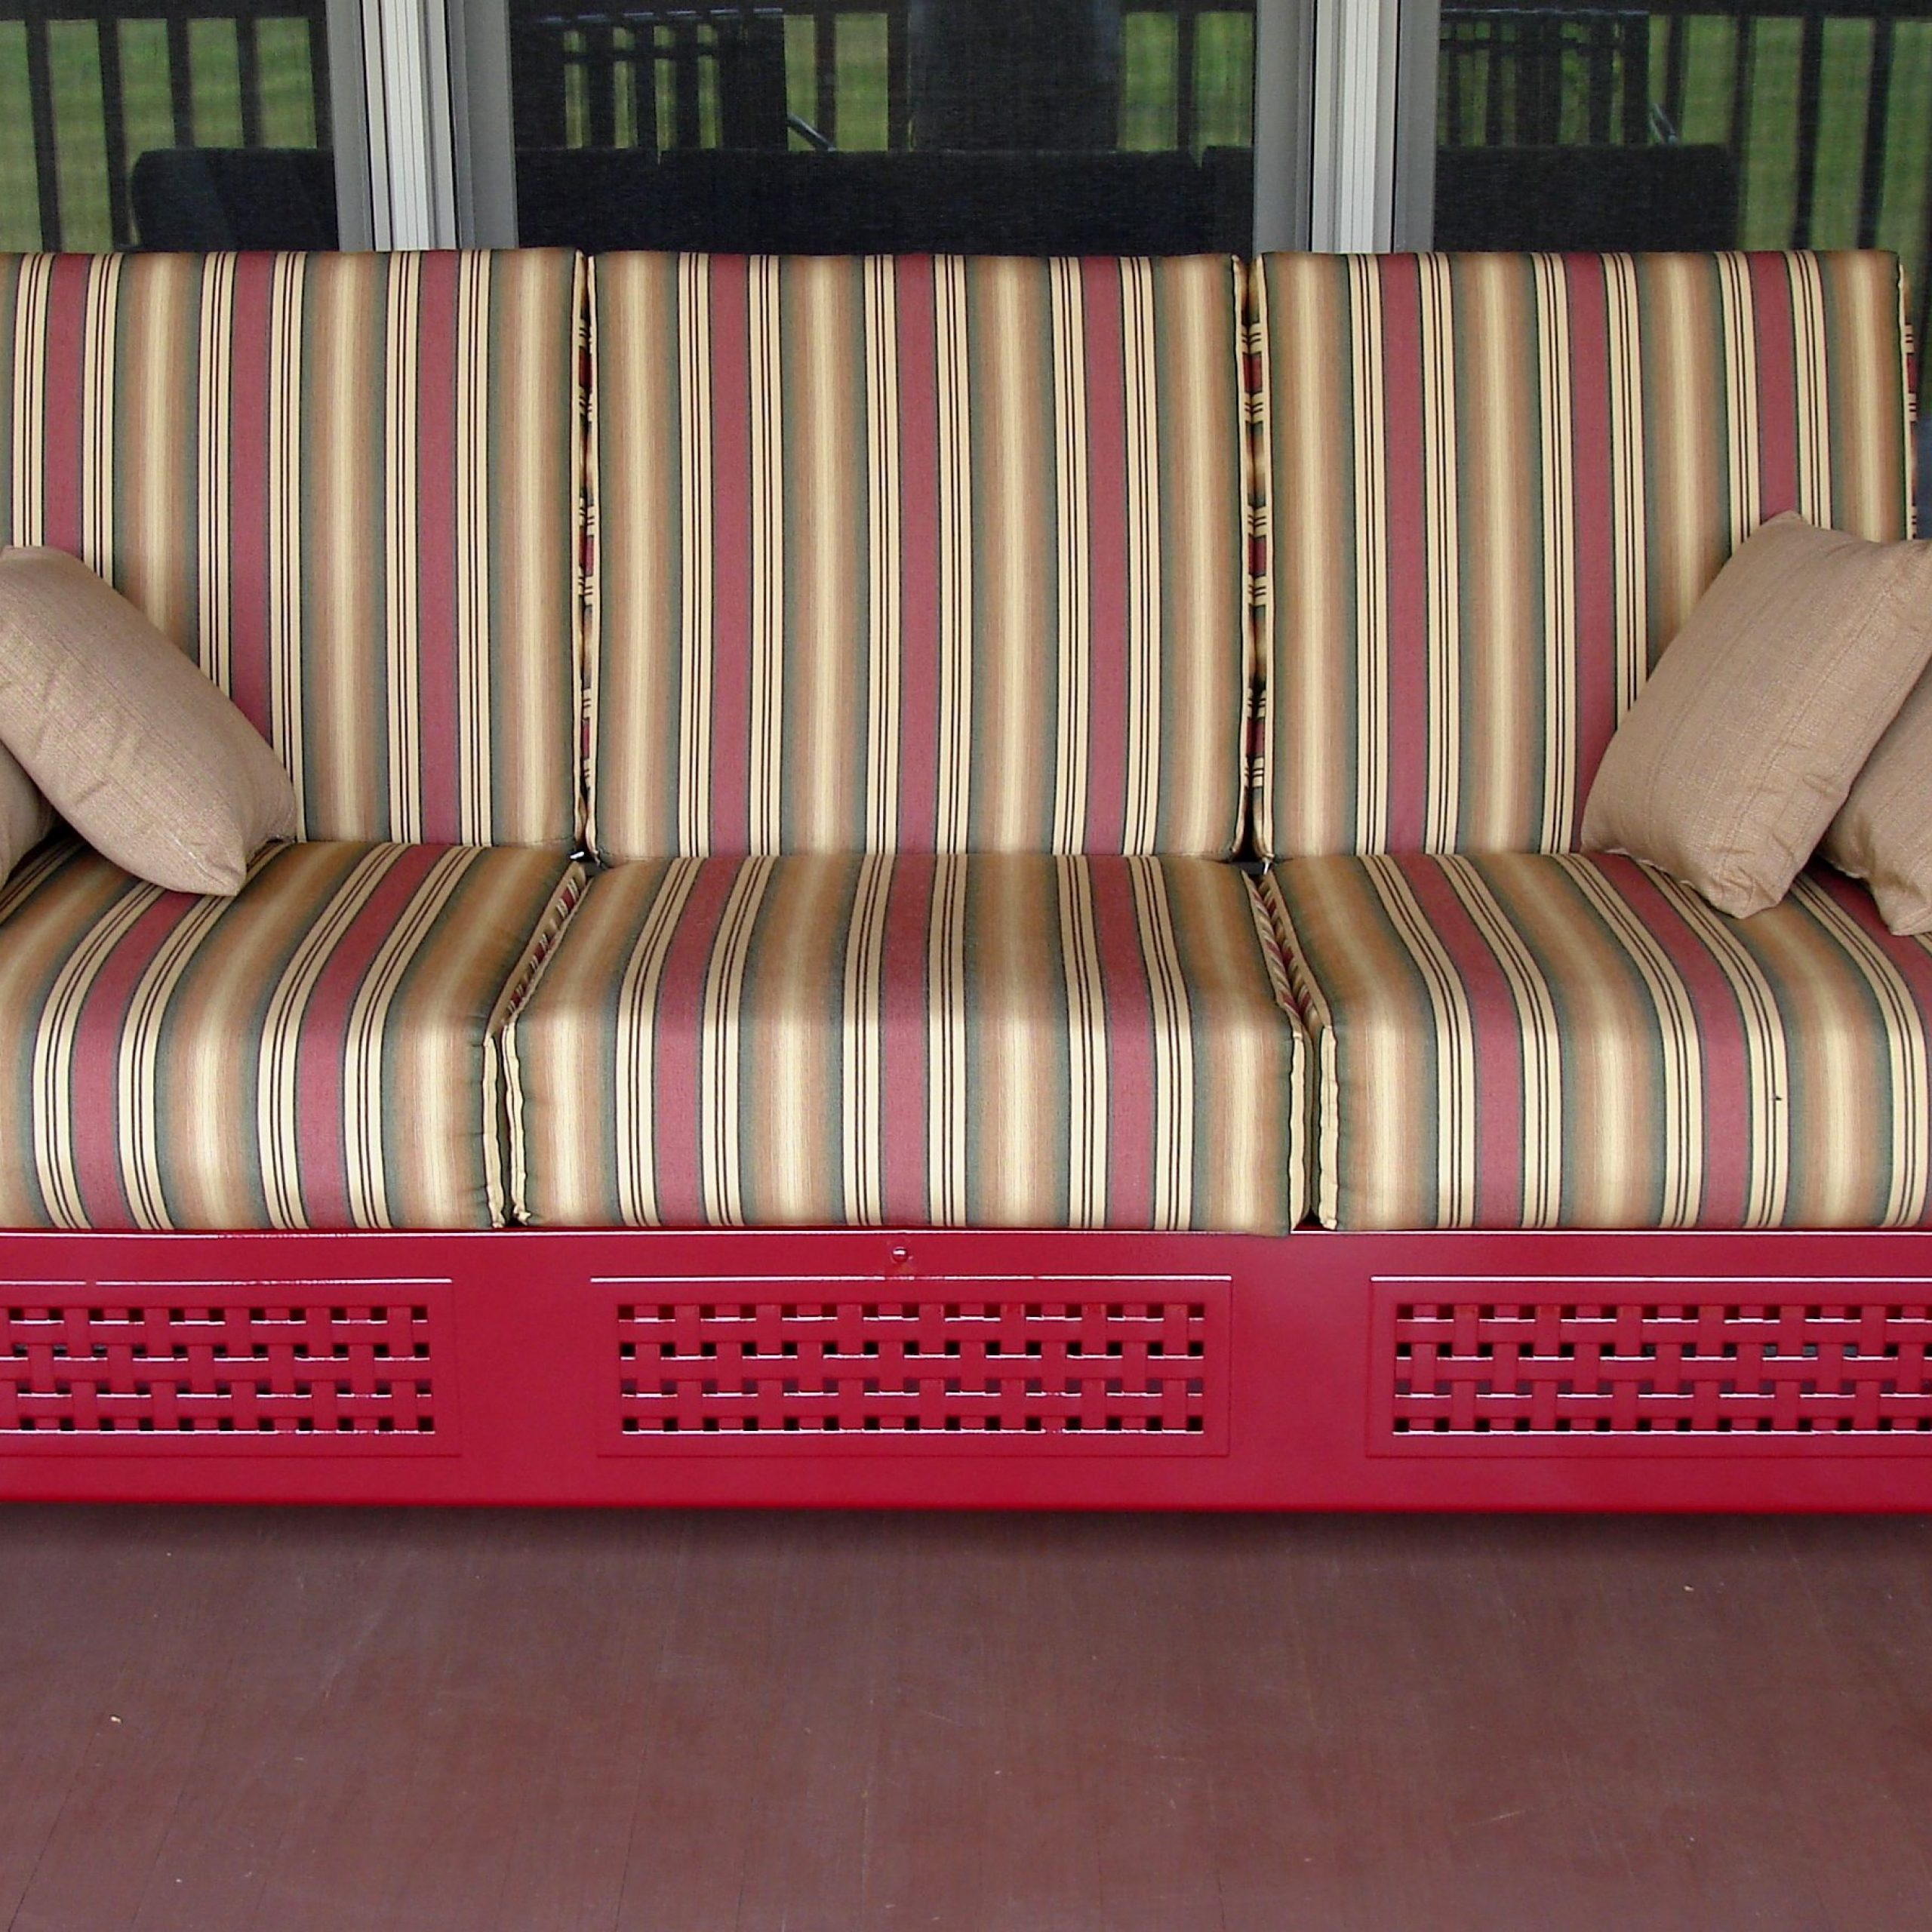 Aluminum Glider Benches With Cushion For Well Liked Furniture: Vintage Aluminum Porch Glider With Cushions For (View 12 of 30)